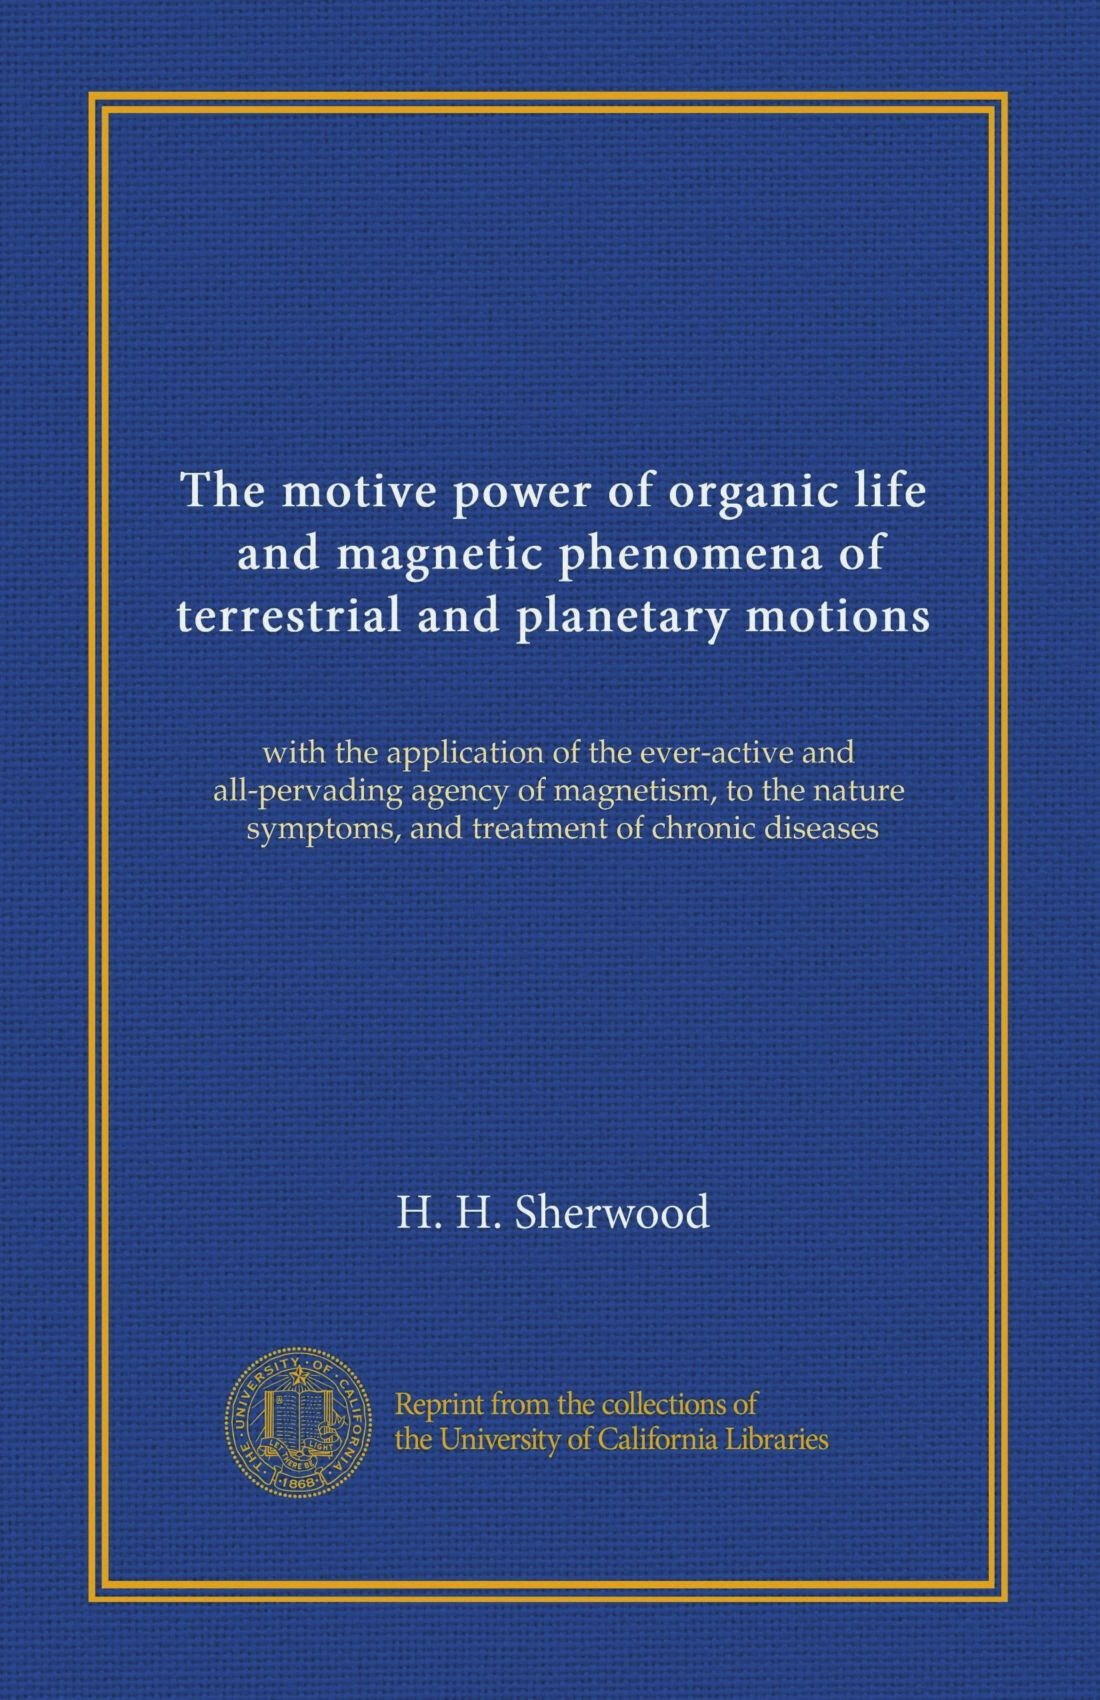 The motive power of organic life, and magnetic phenomena of terrestrial and planetary motions: with the application of the ever-active and ... symptoms, and treatment of chronic diseases pdf